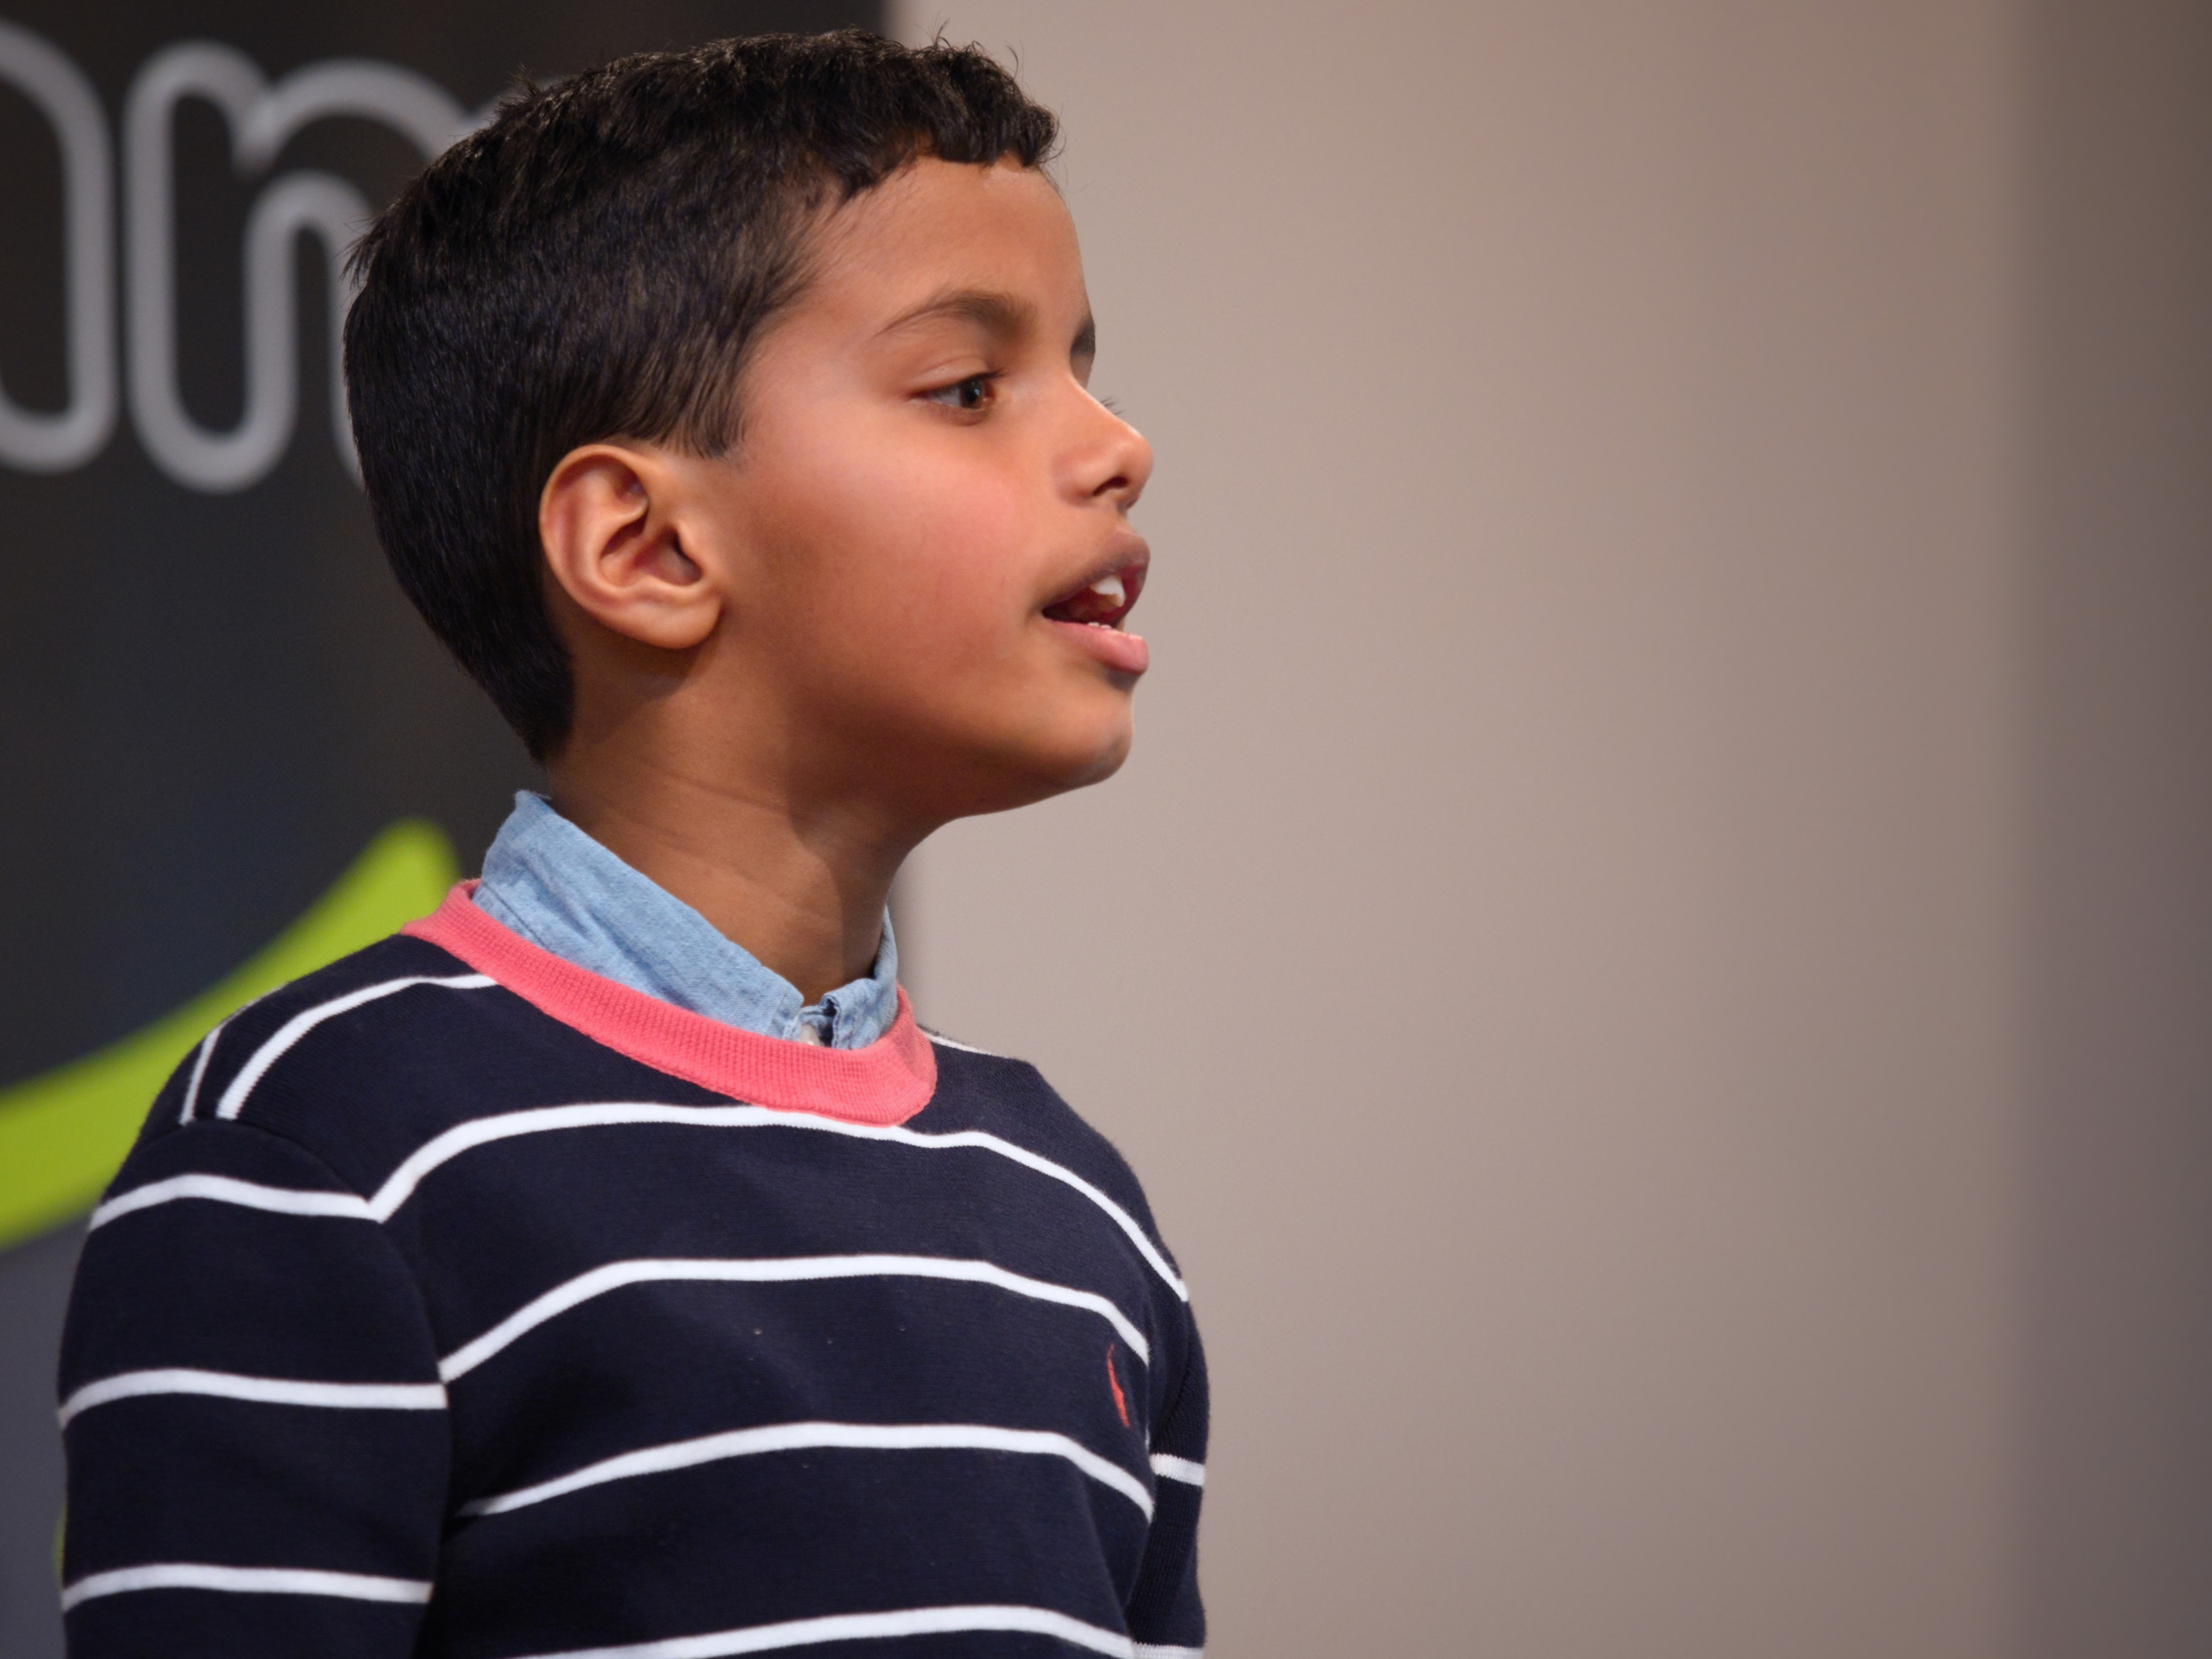 WGE Classical Vocal Aiden Shayane Thanapathy Performs